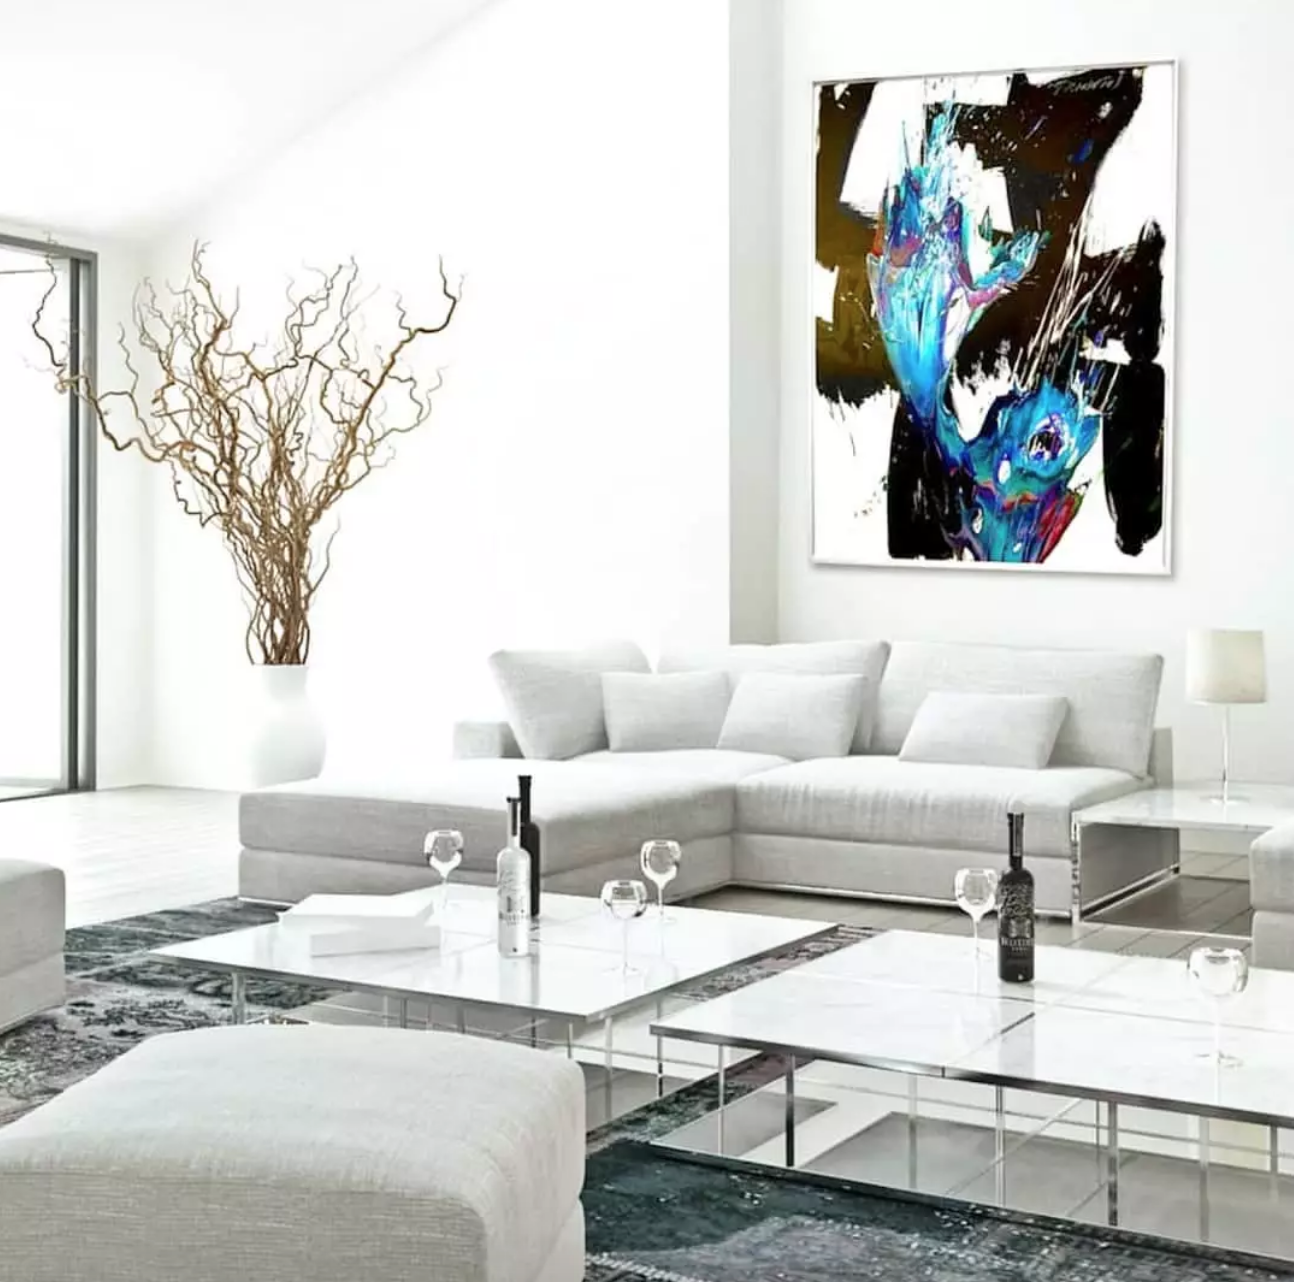 Contemporary abstract painting in modern home by Peter Tirantos in Miami